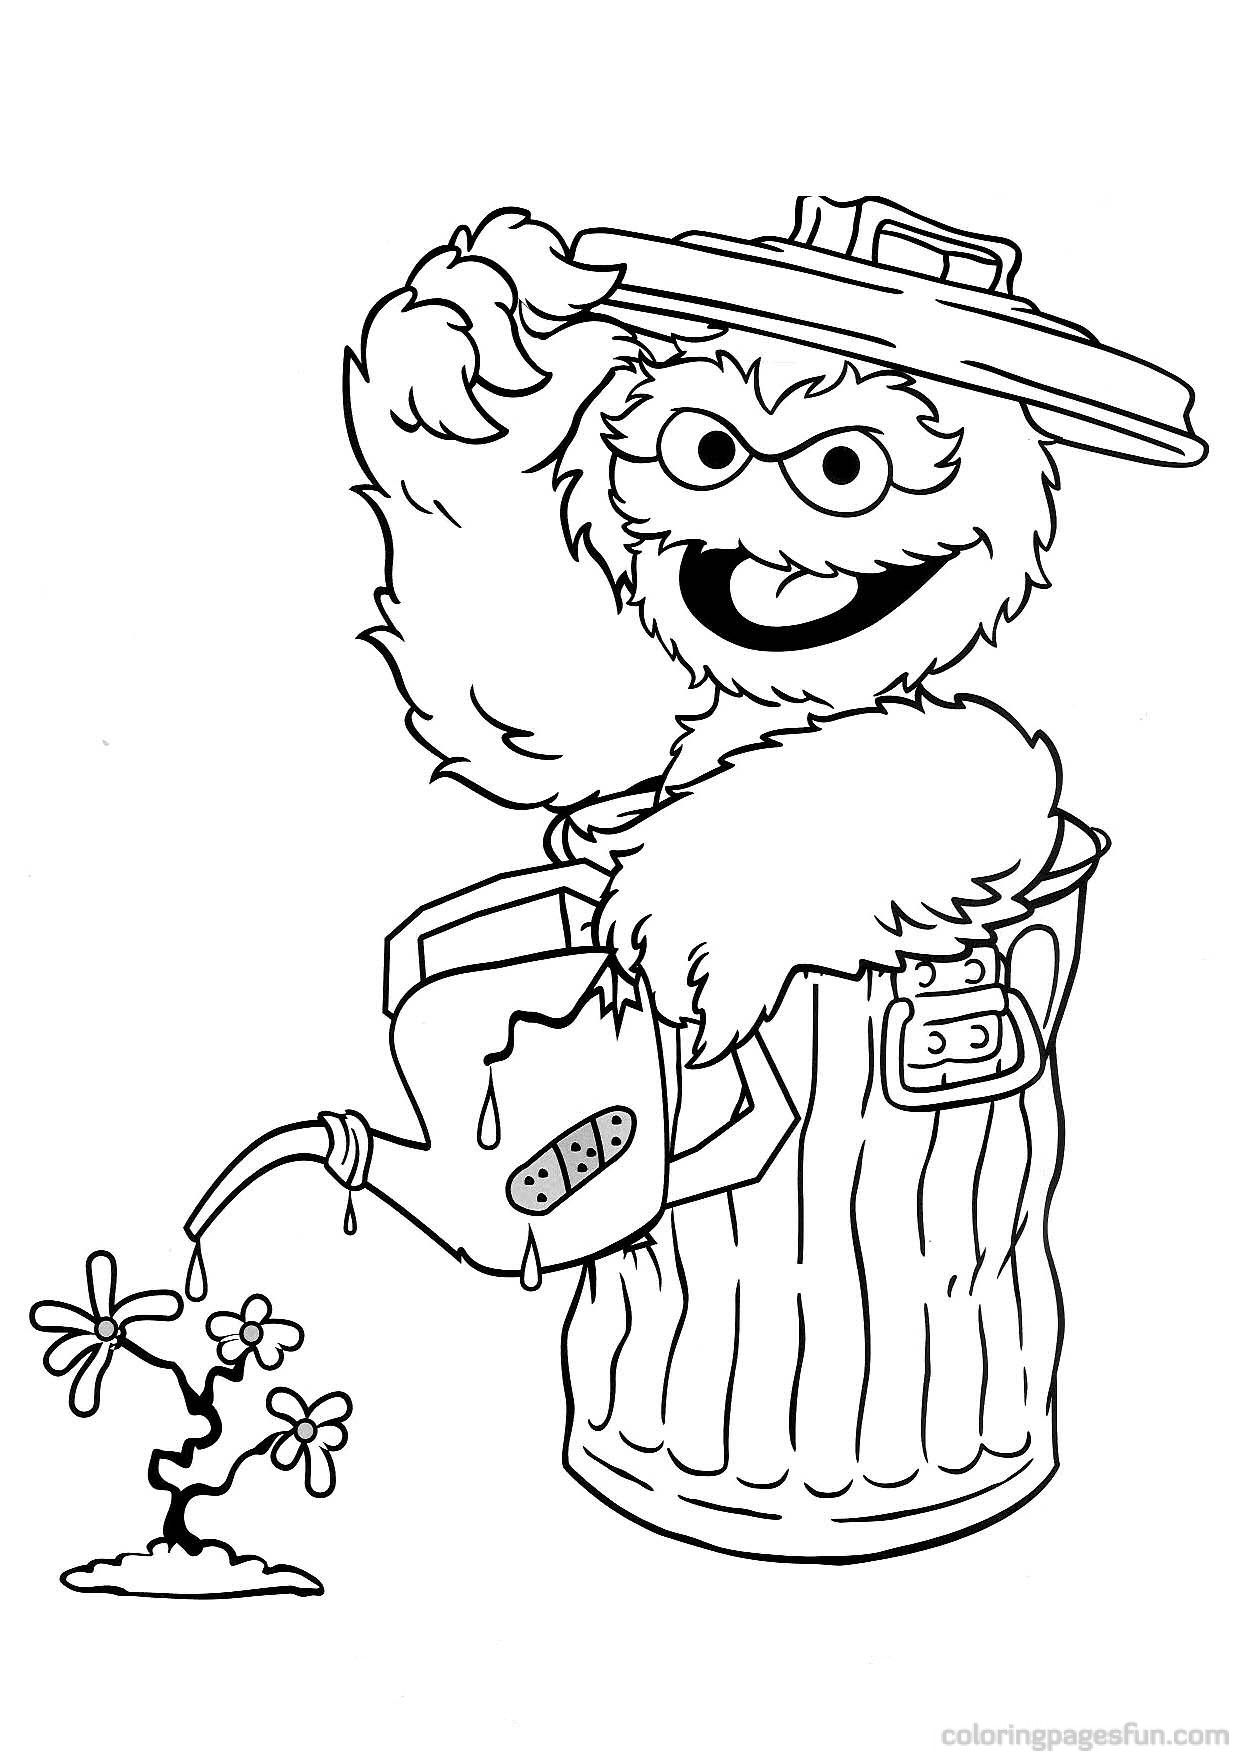 free printable sesame street coloring pagesjpg 1240 oscar the grouchcolouring